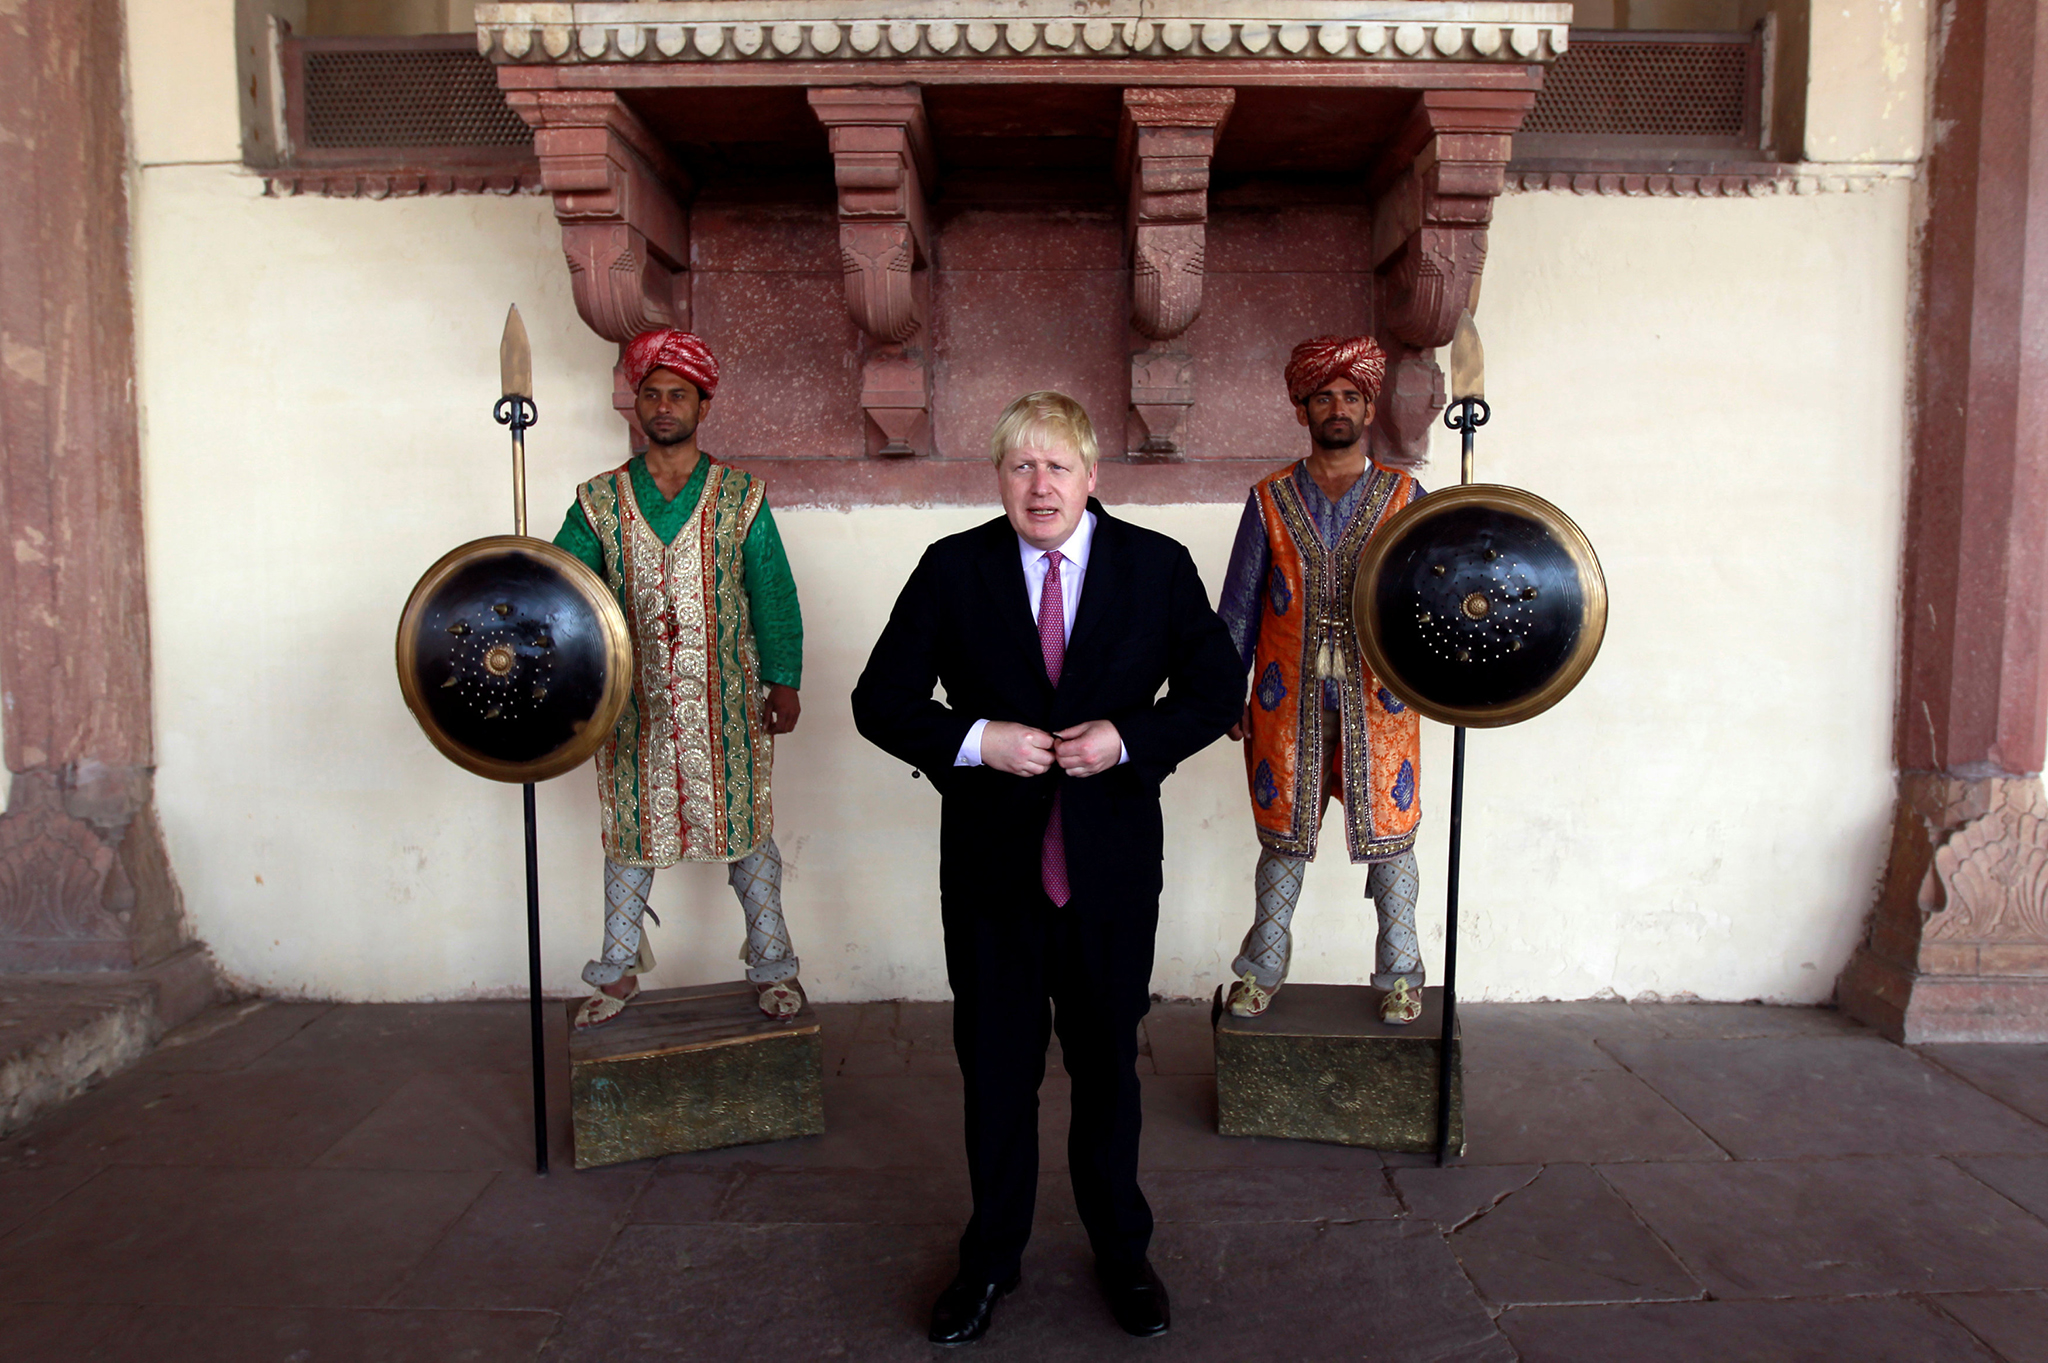 Britain's Foreign Secretary Boris Johnson poses with ceremonial guards at the Lahore Fort in Lahore, Pakistan November 25, 2016. REUTERS/Caren Firouz